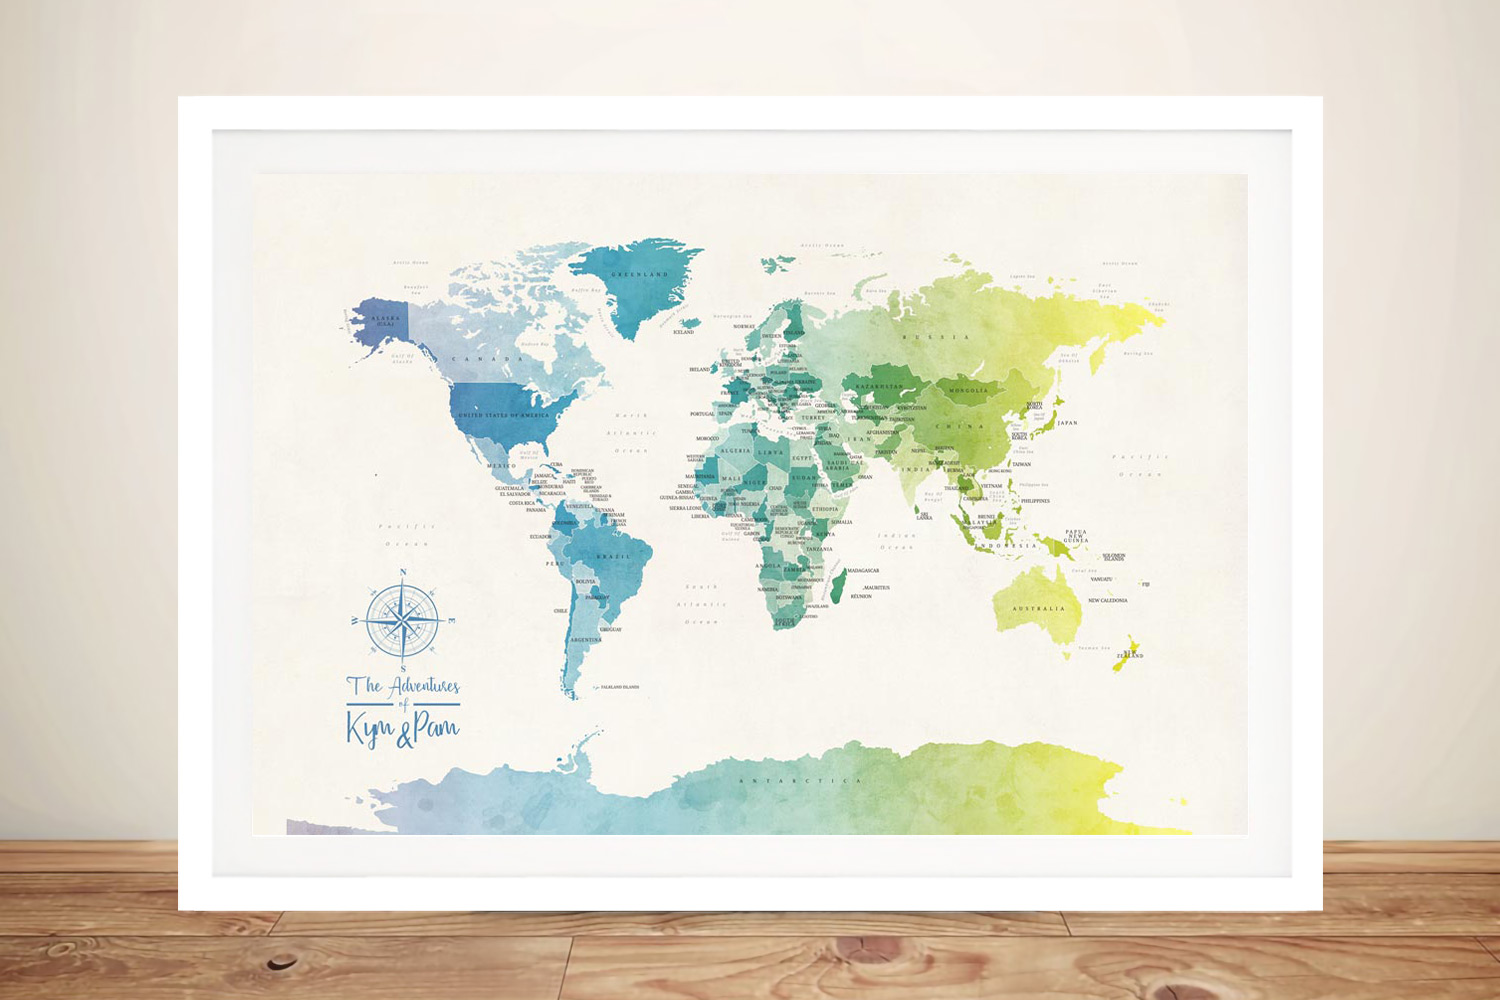 Buy Watercolour Political World Map Wall Art | Personalised World Map in Watercolours 1